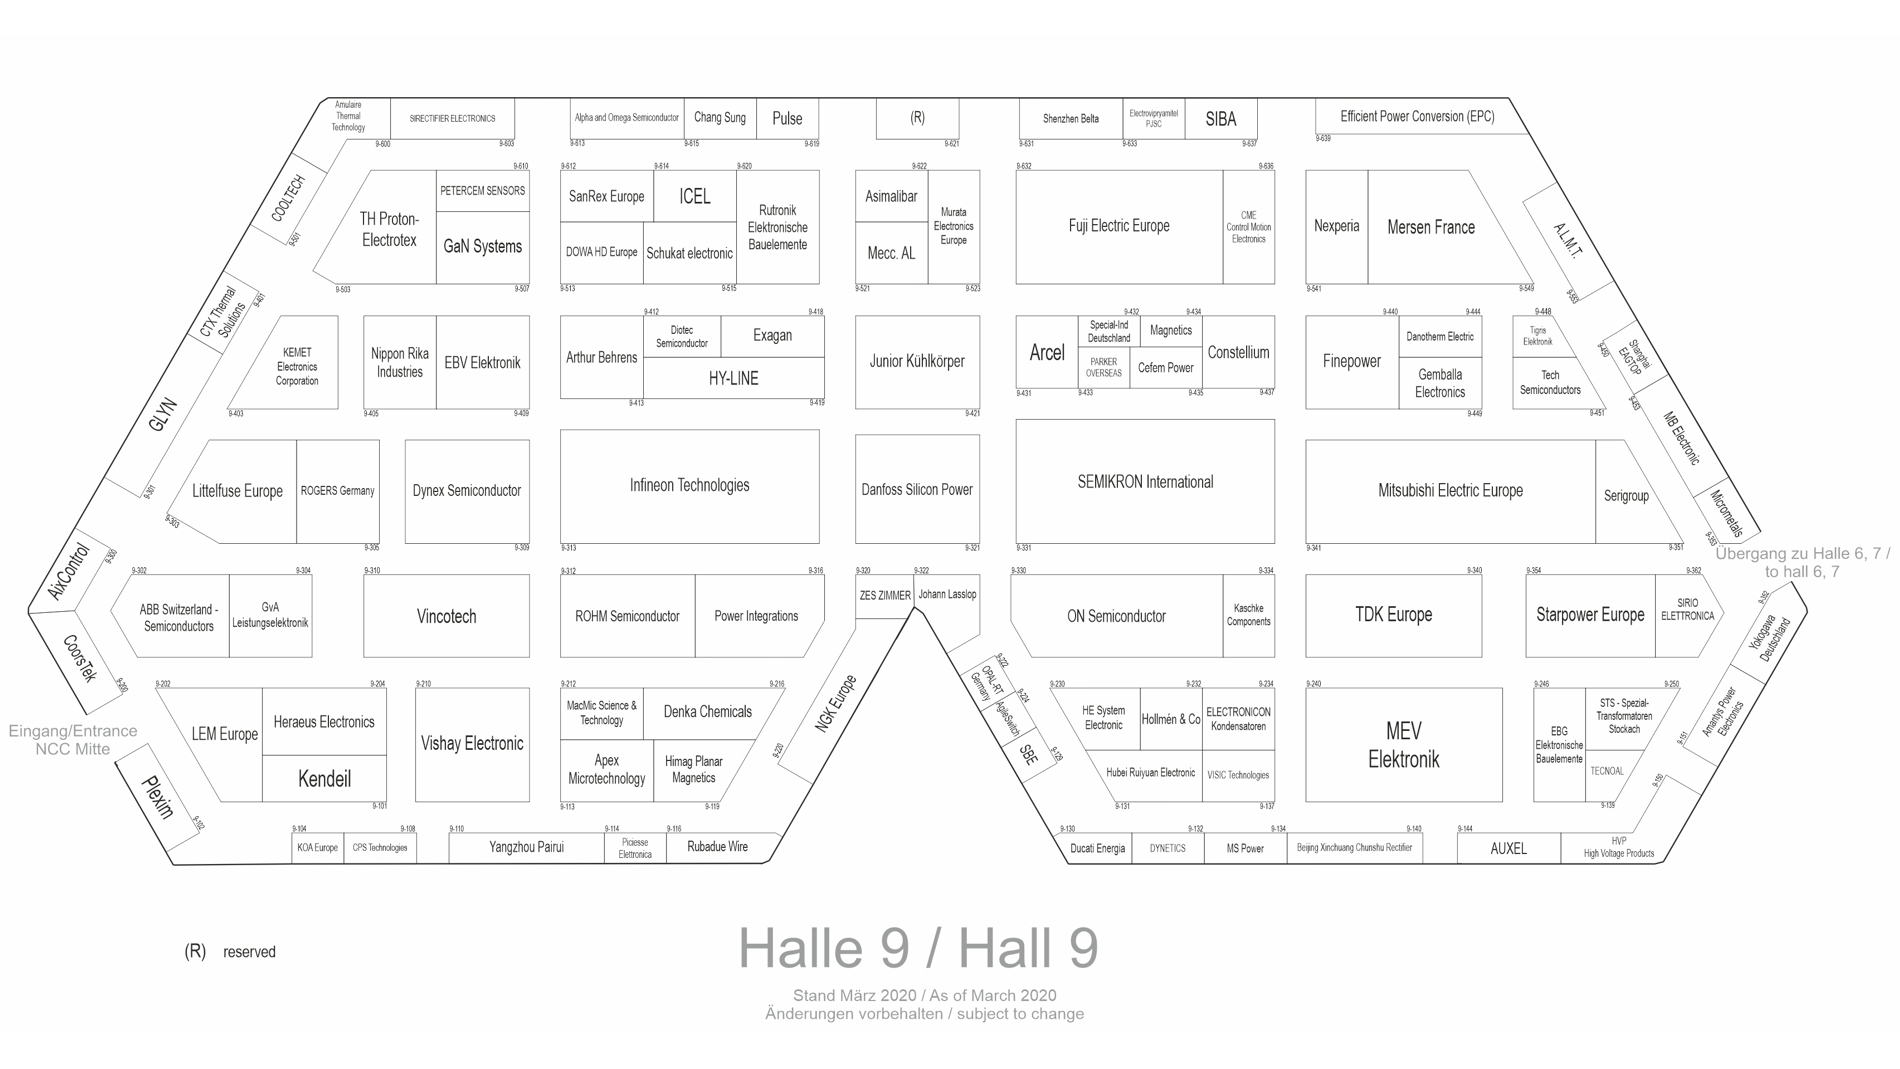 Hall 9 Nürnberg Messe